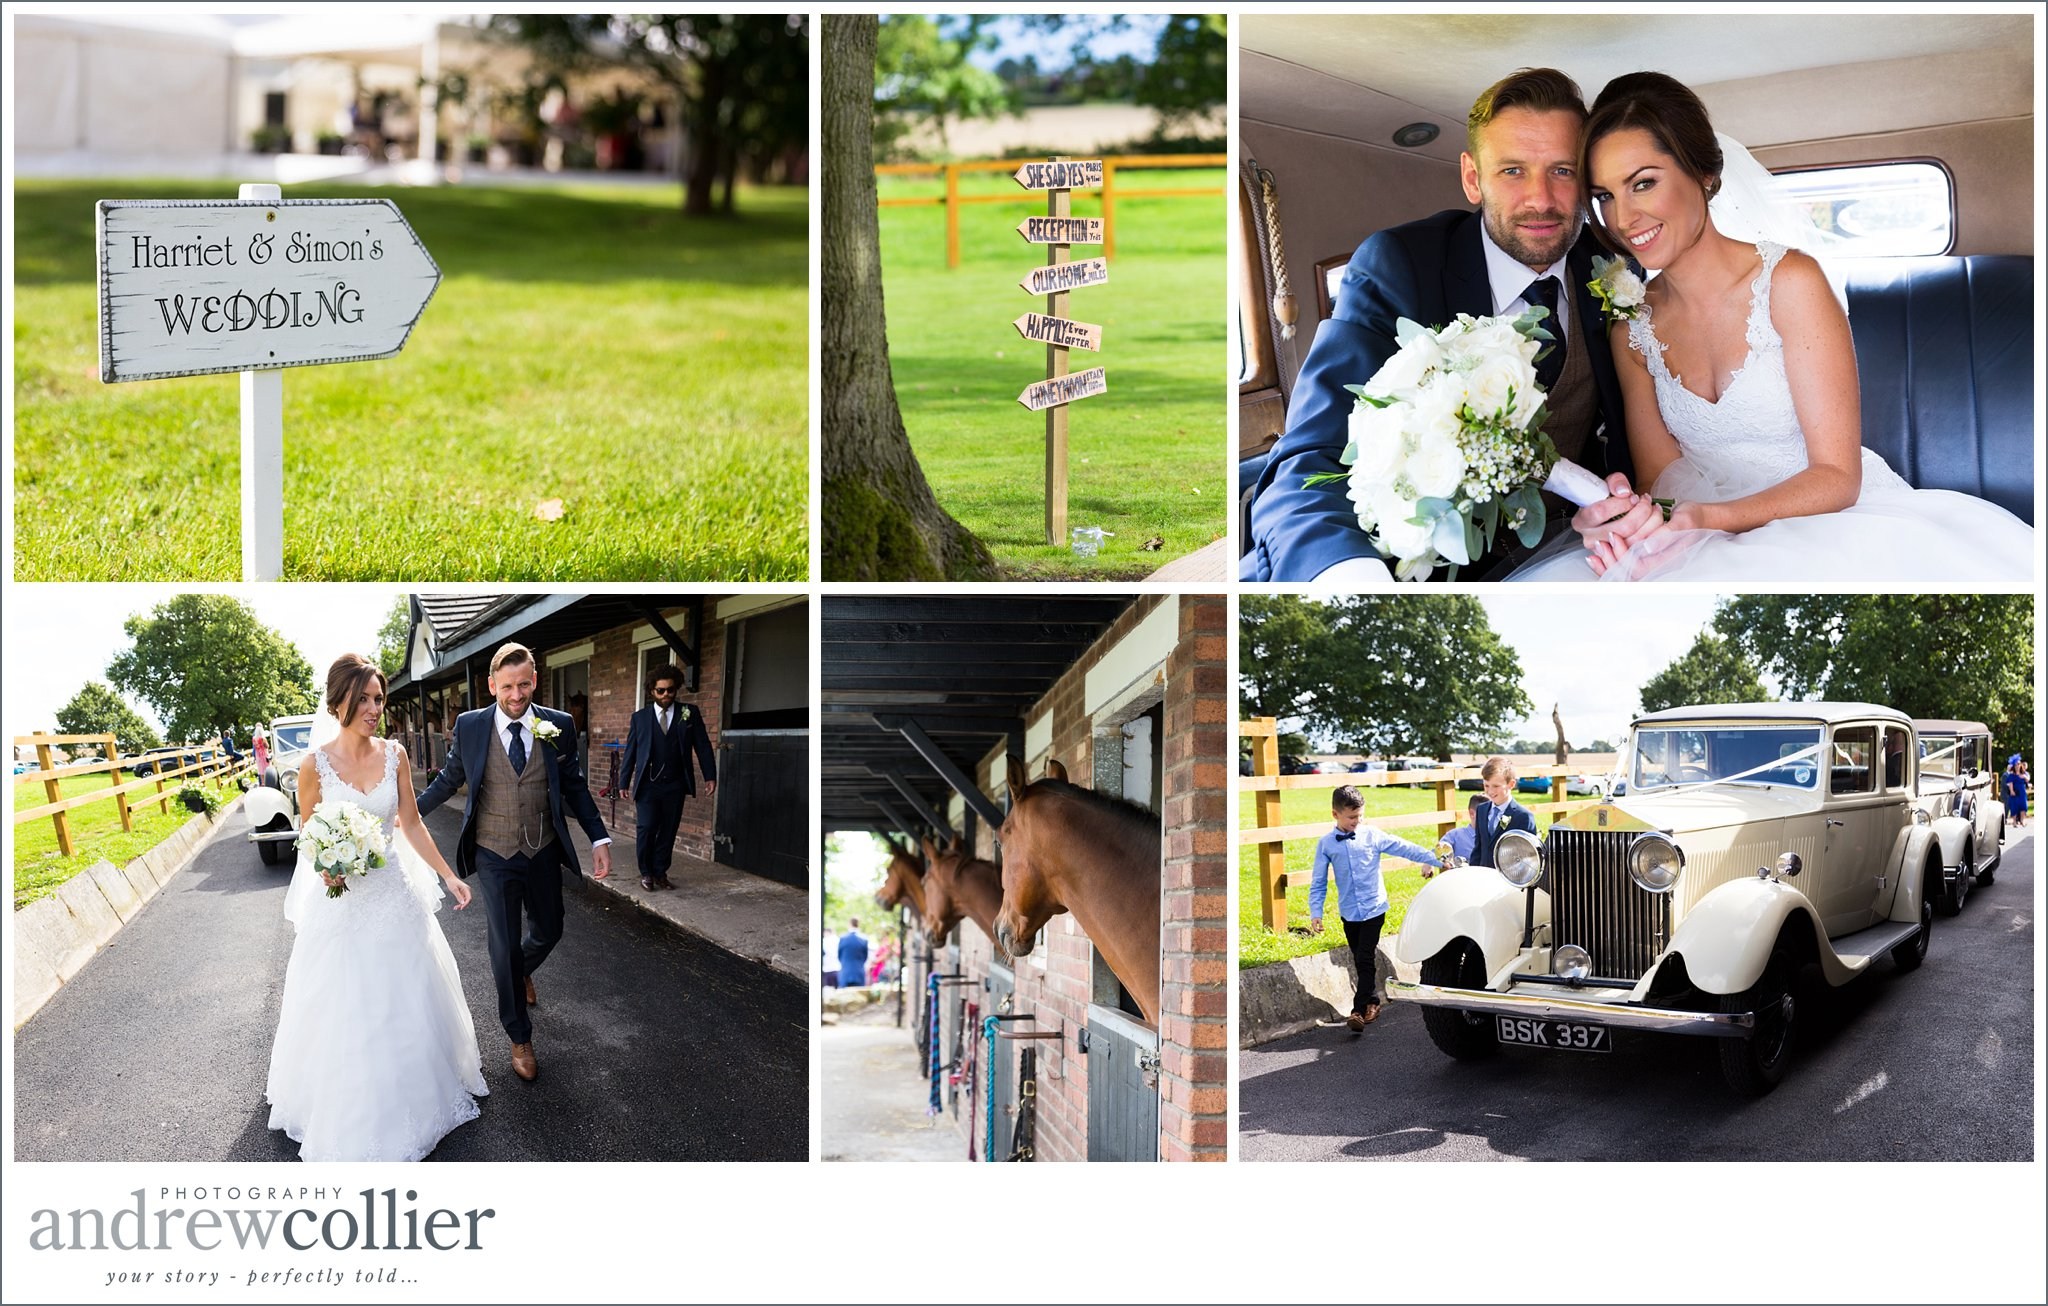 Andrew Collier Photography tells the story of your big day